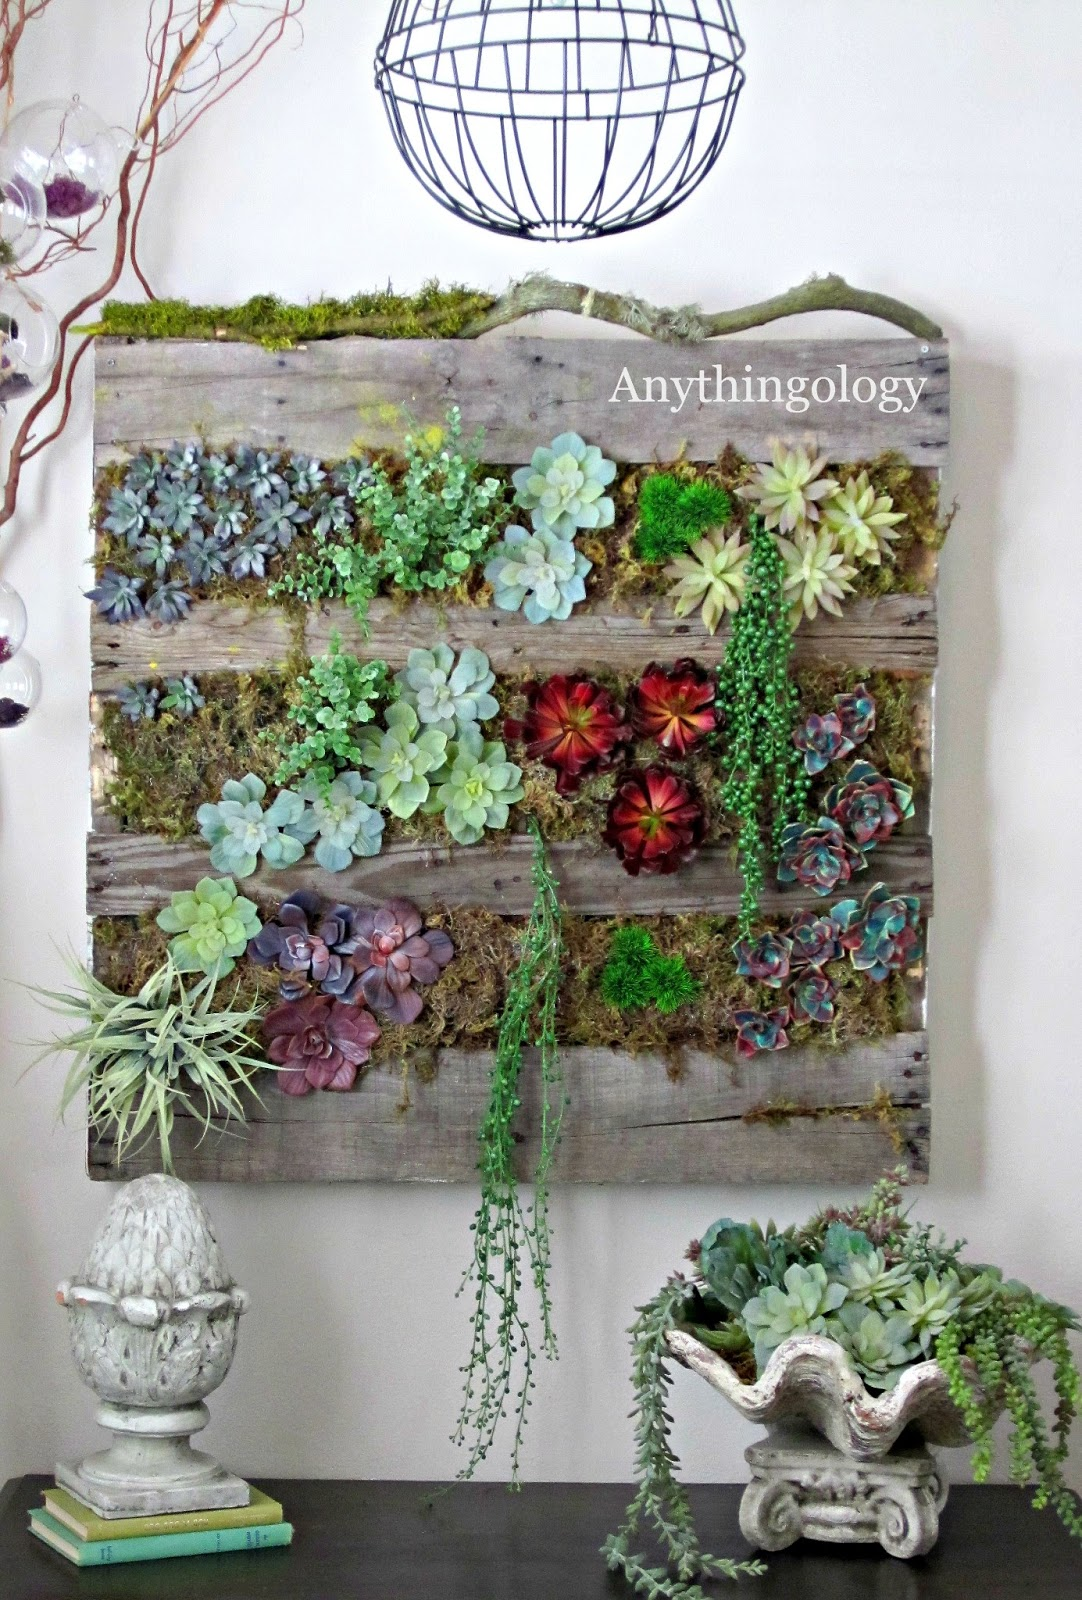 Living wall art on pinterest for Wanddeko outdoor